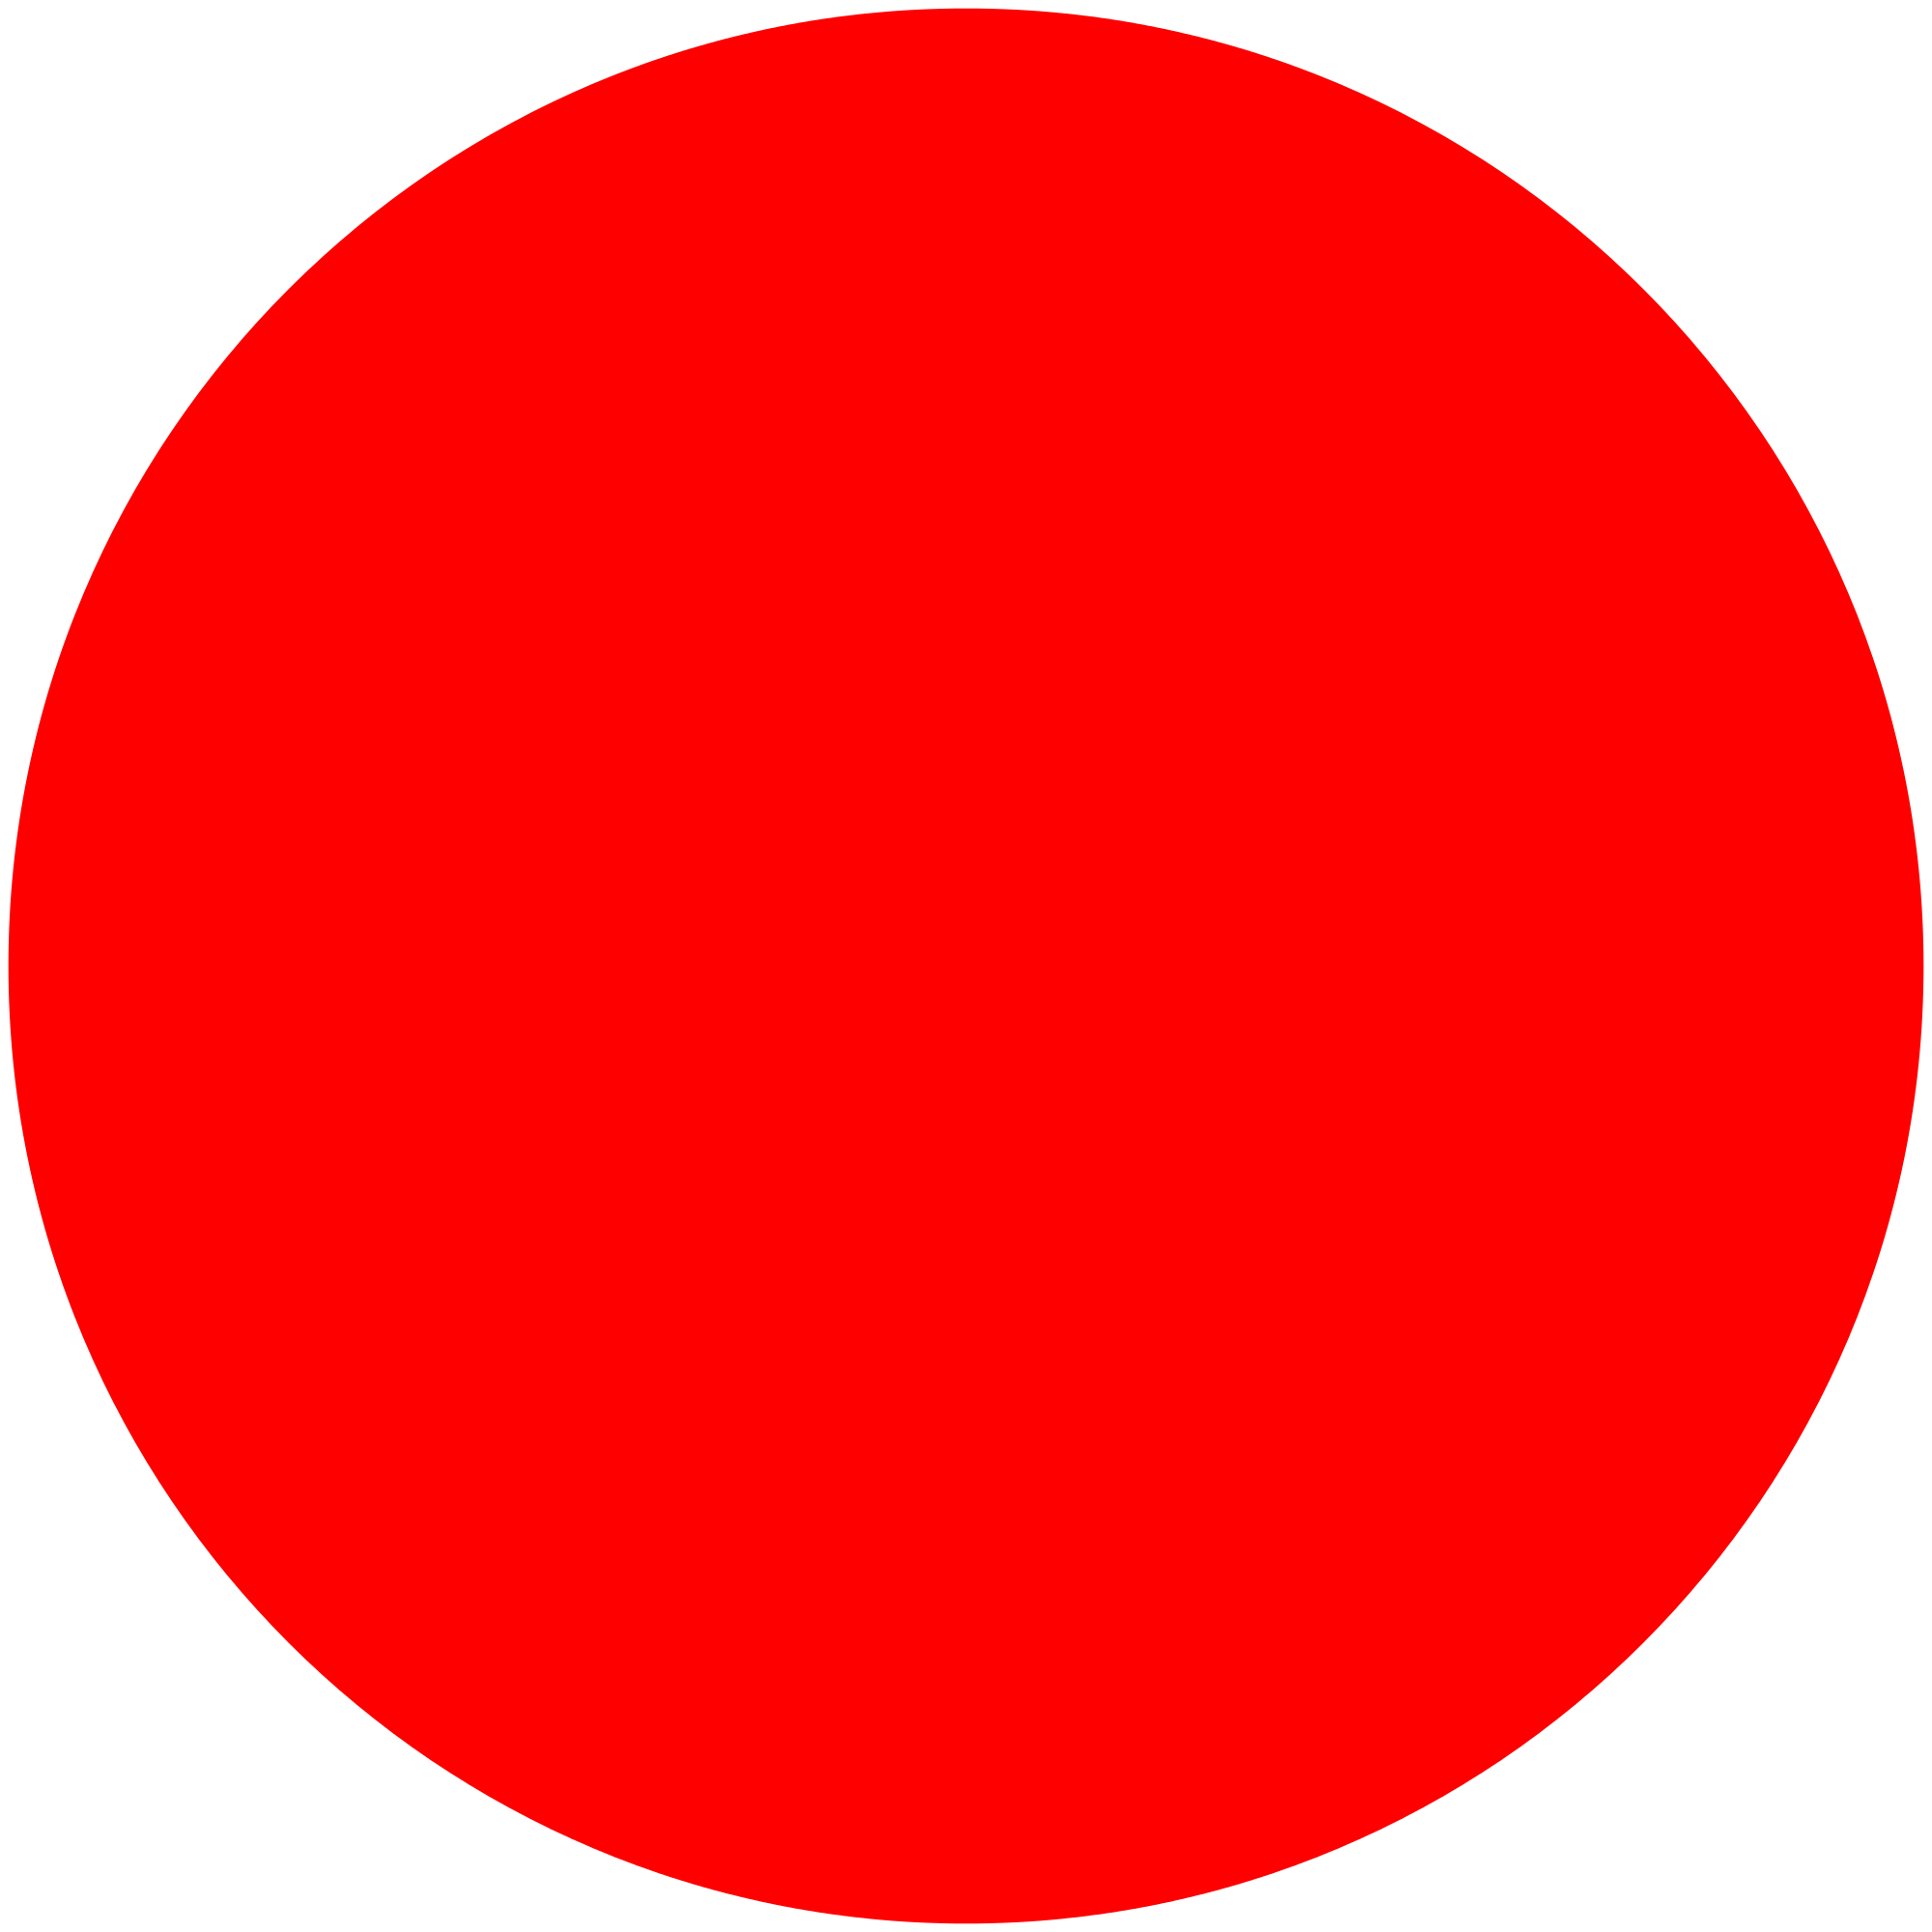 red circle png transparent